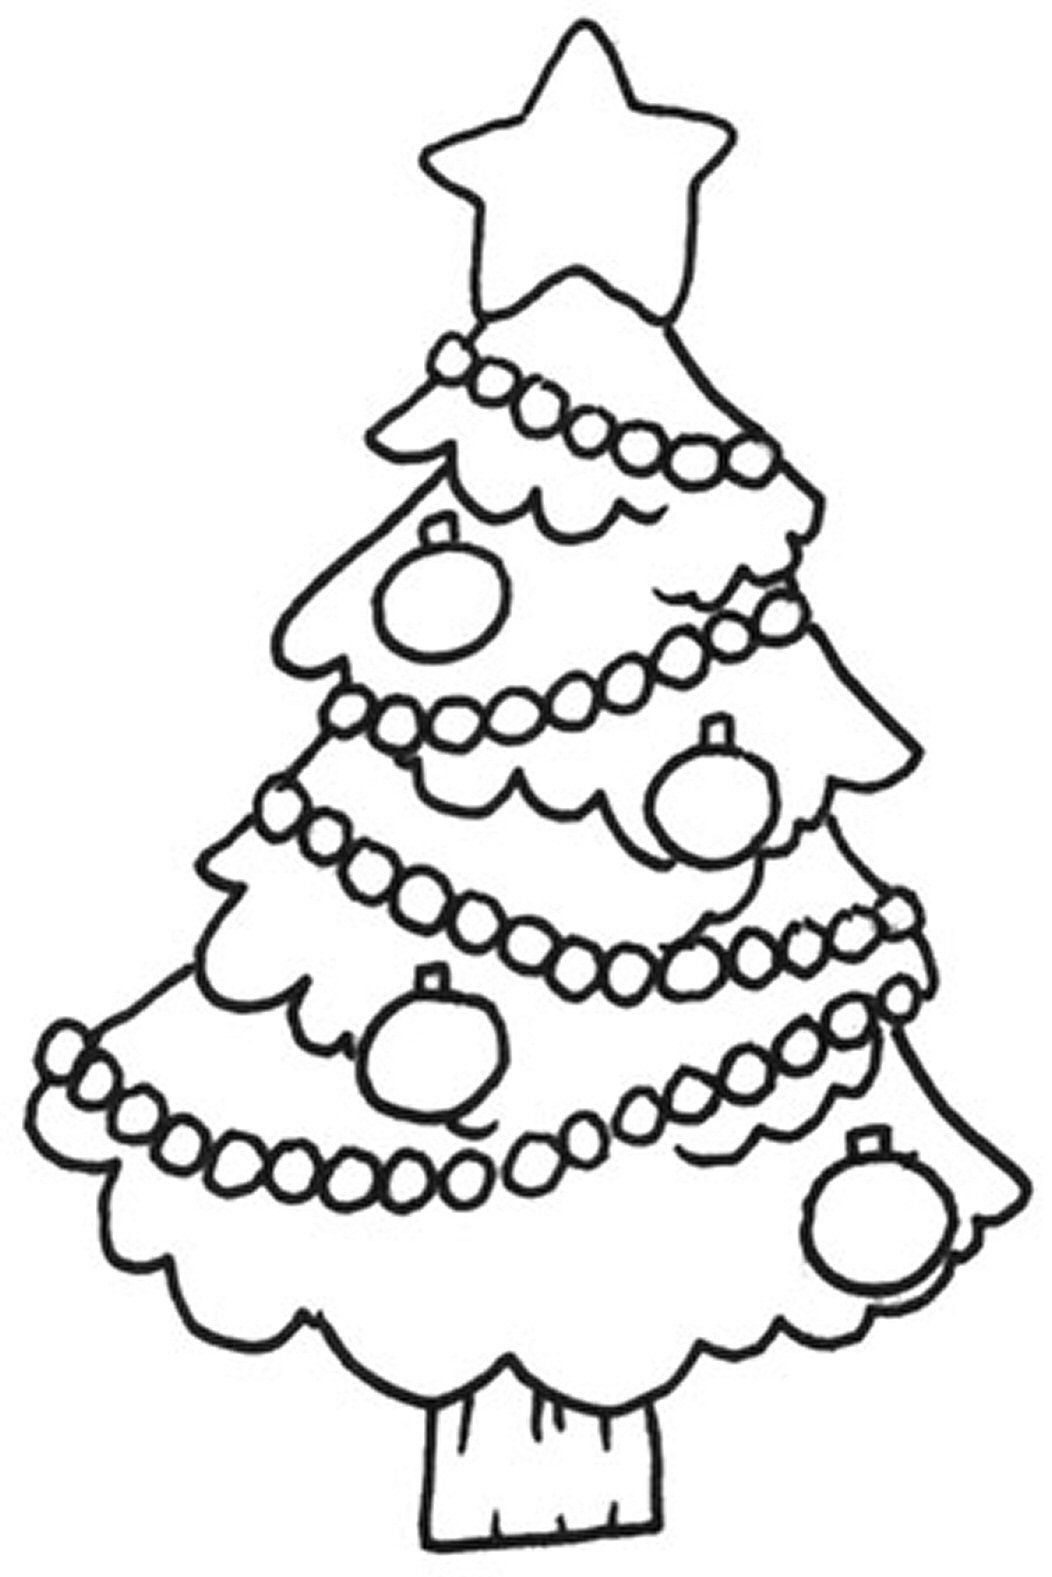 Merry Christmas Tree Coloring Page With Free Printable Chidren Pages